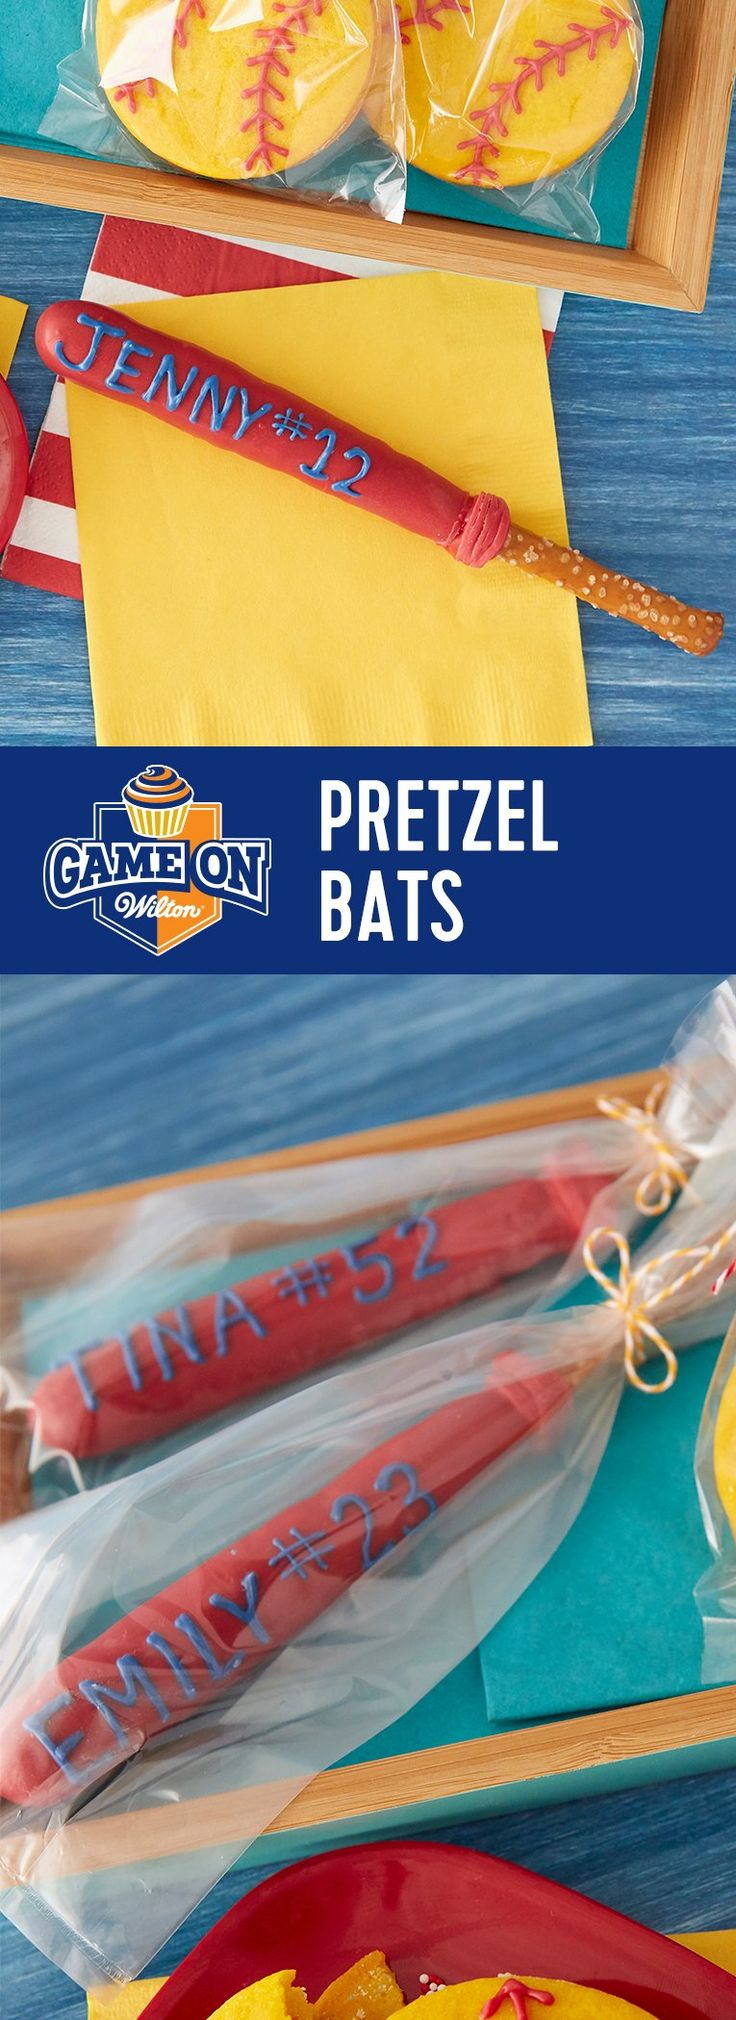 Easy Pretzel Bats for Baseball or Softball - Playoffs are around the corner! Here's how to extend the winning streak...decorate tasty pretzel bats and hide sprinkles inside ball cookies for the next playoff party!